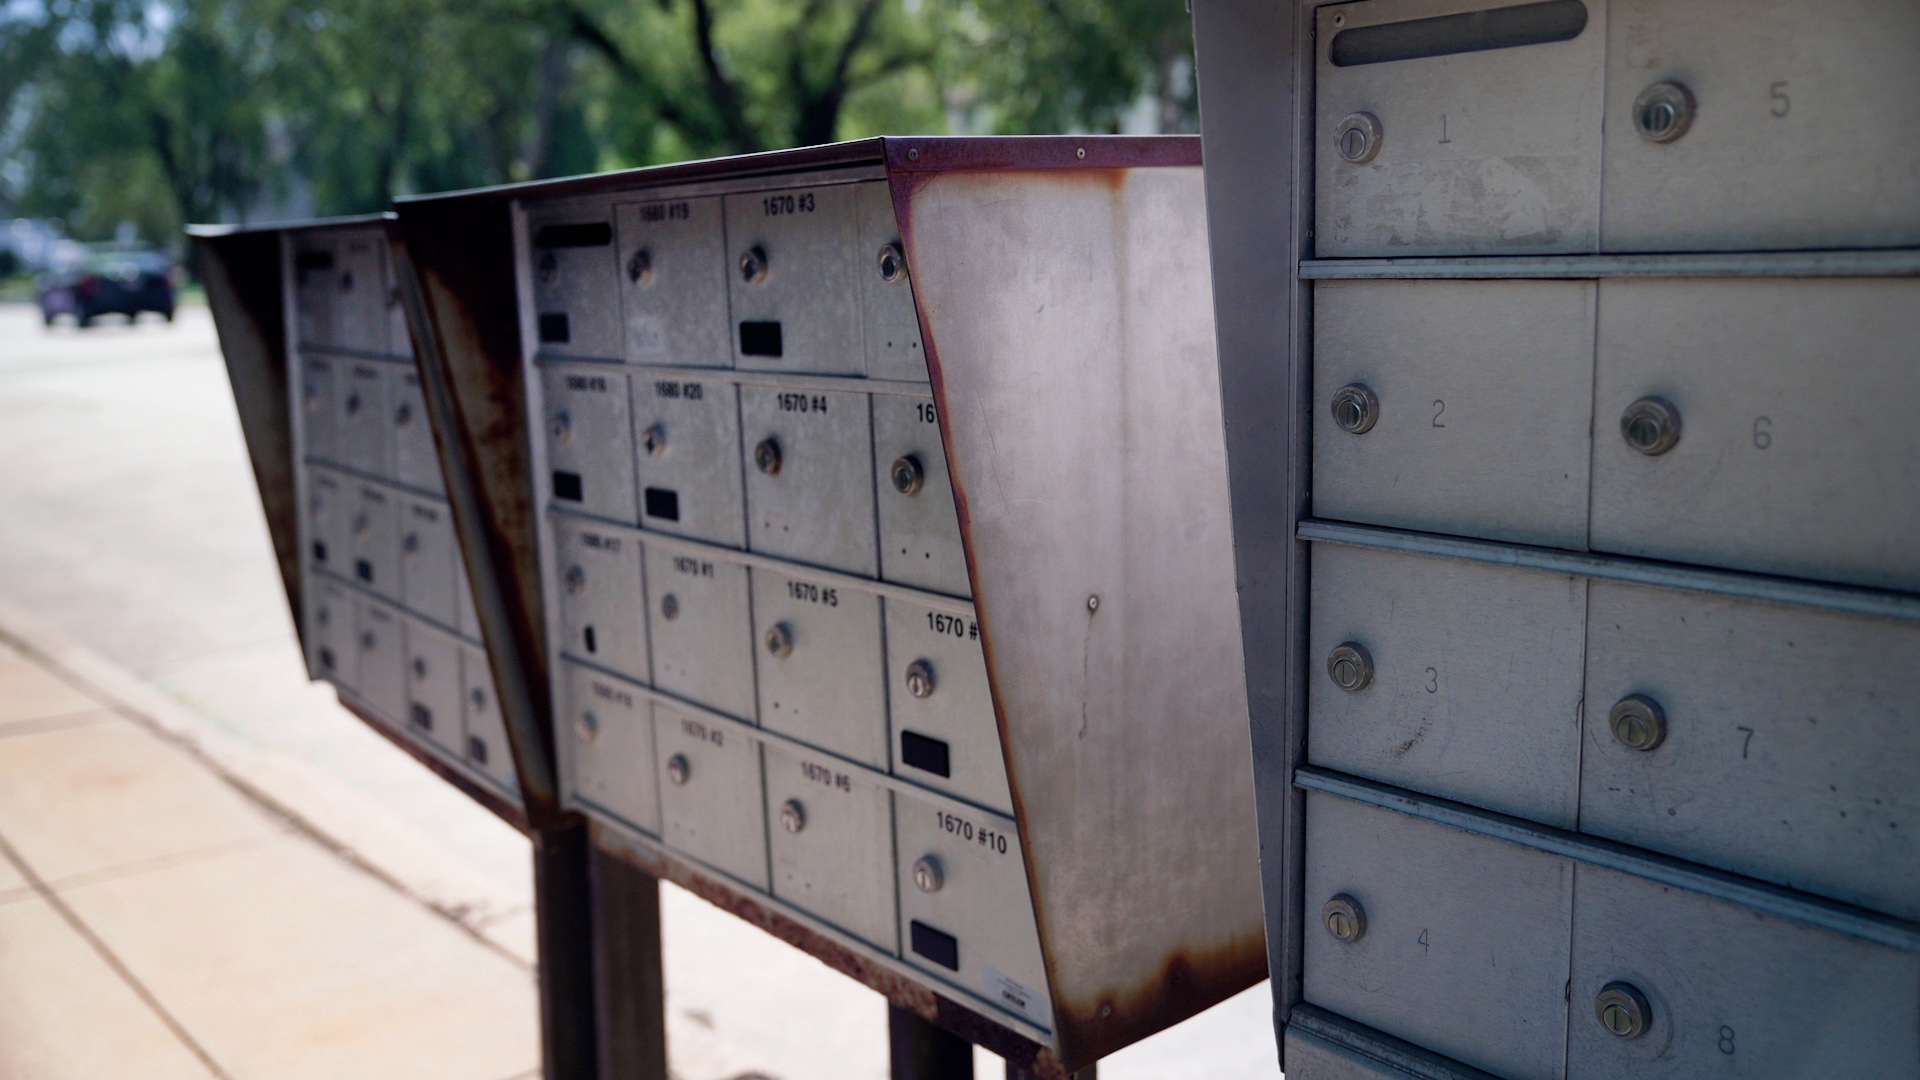 Banks of apartment mailboxes stand at a curb